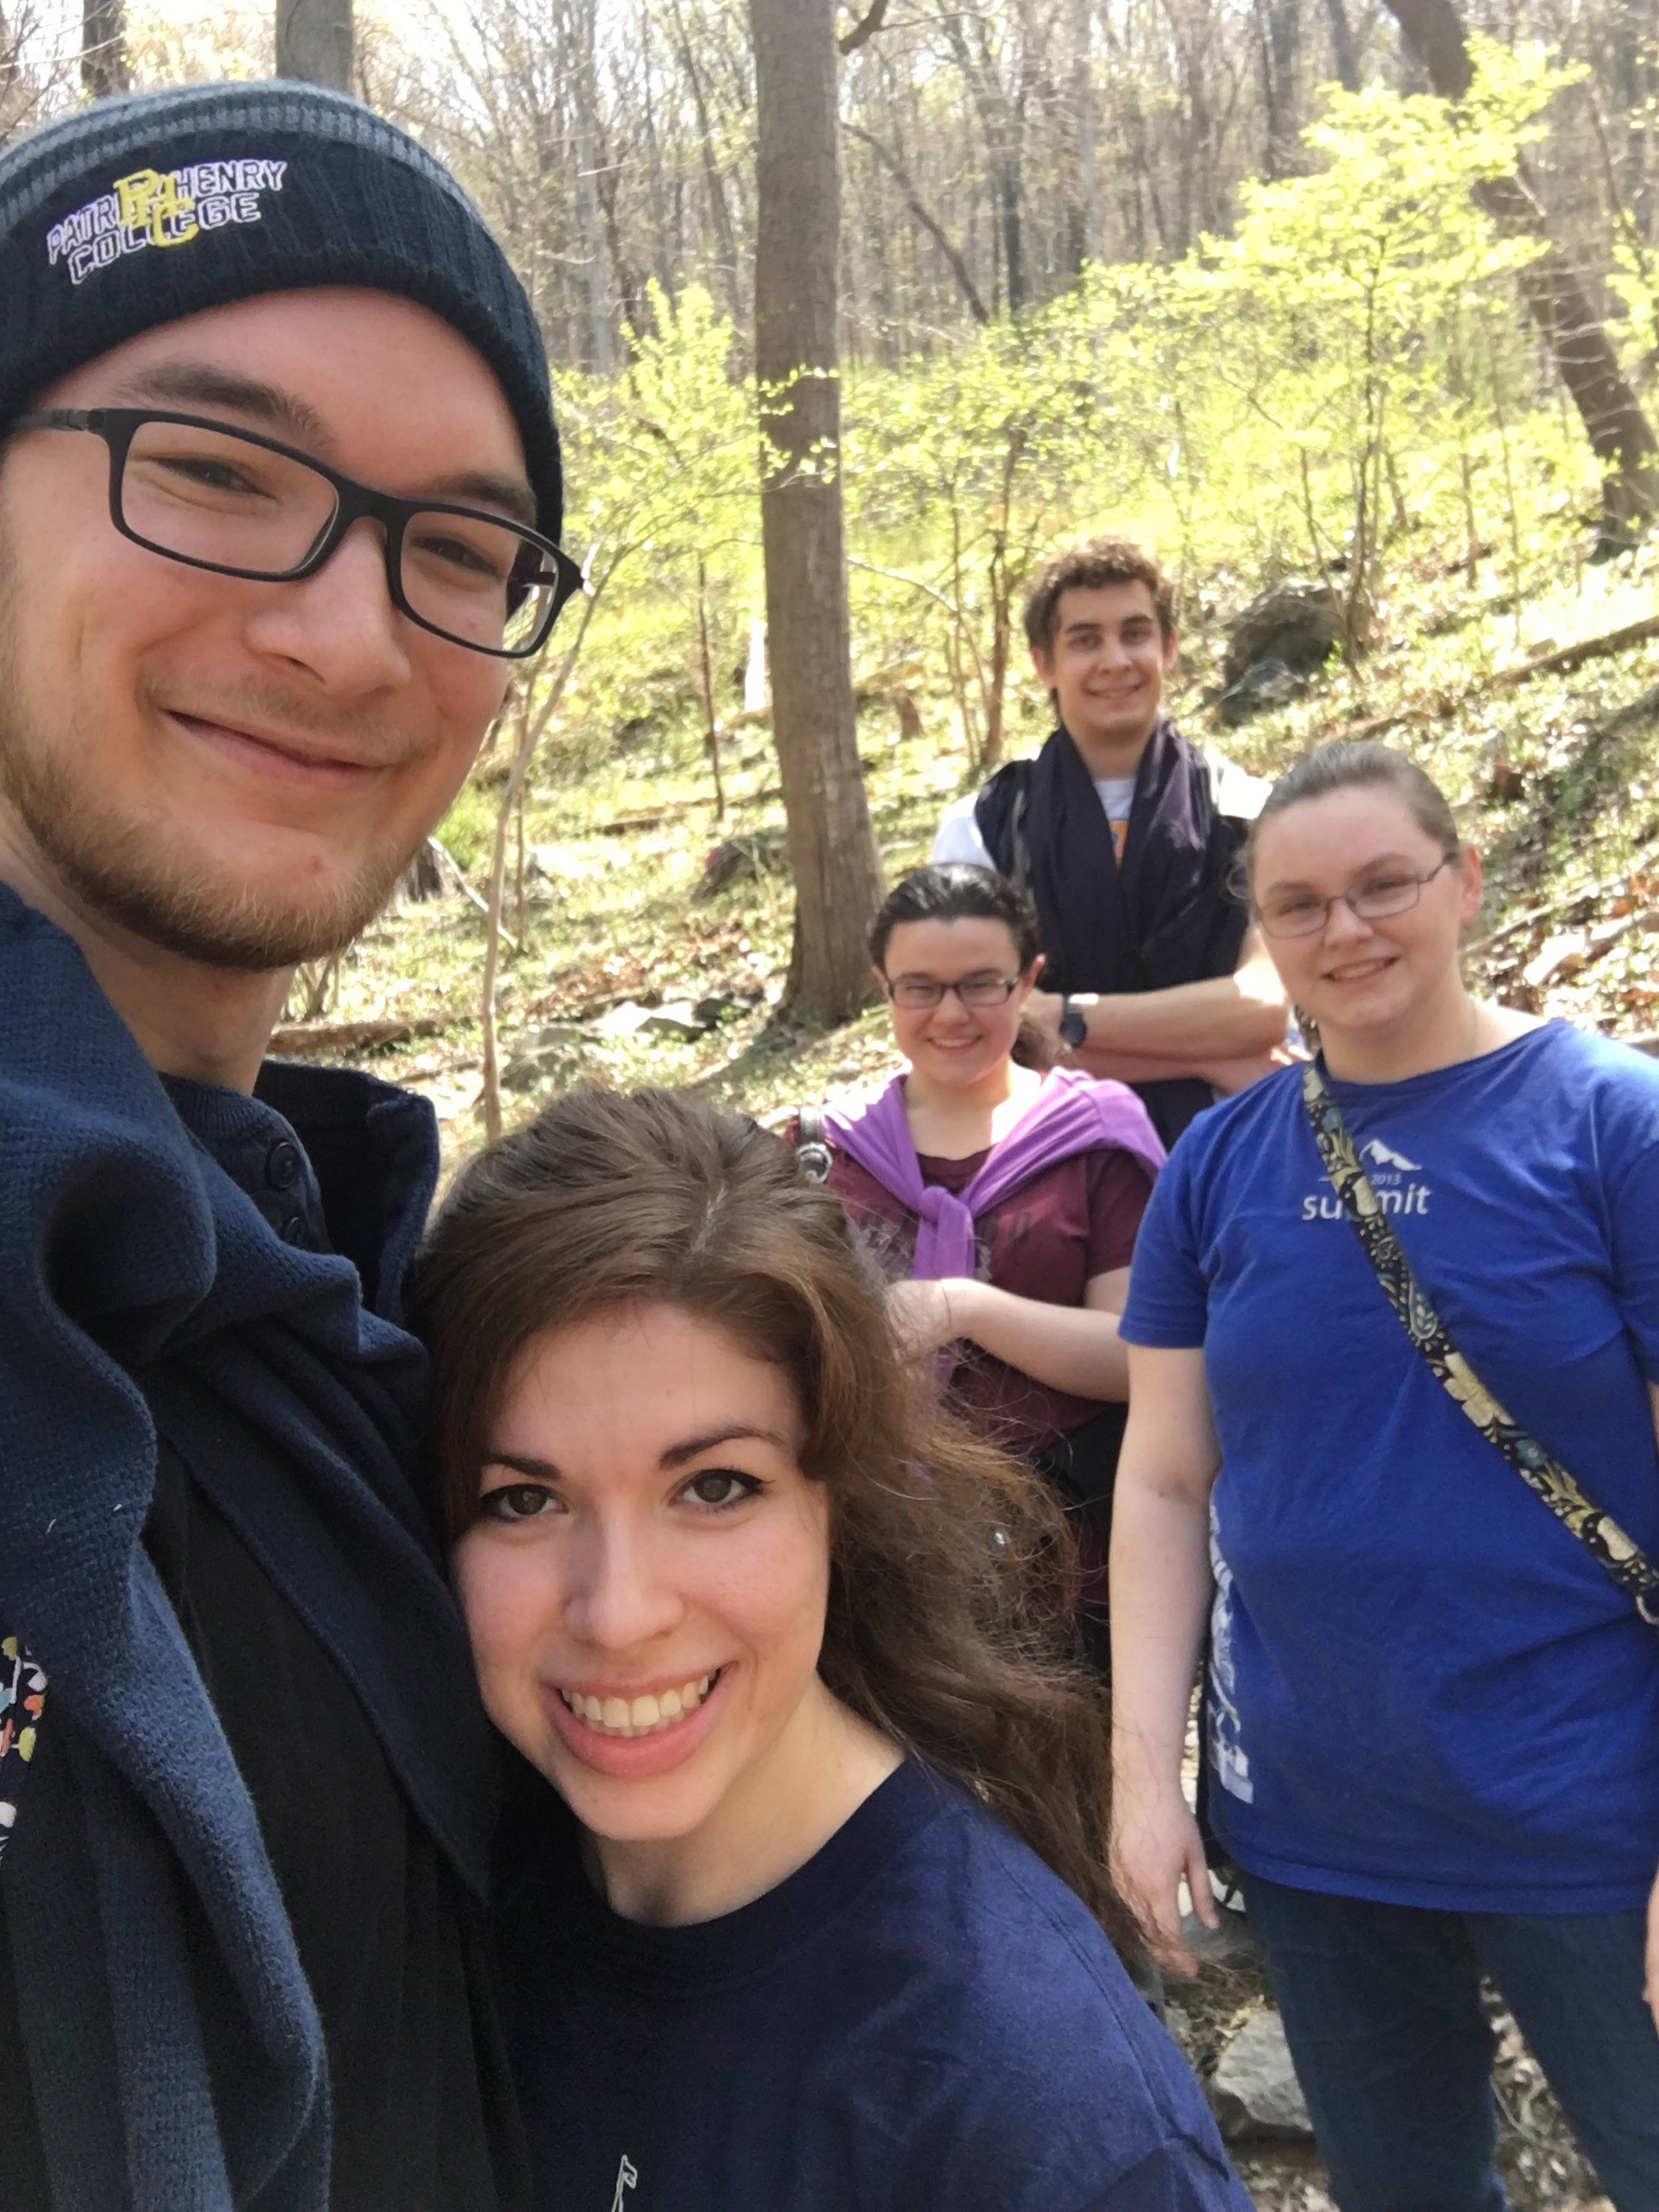 Patrick Henry College Students hiking at Harper's Ferry PC Katie Segesdy